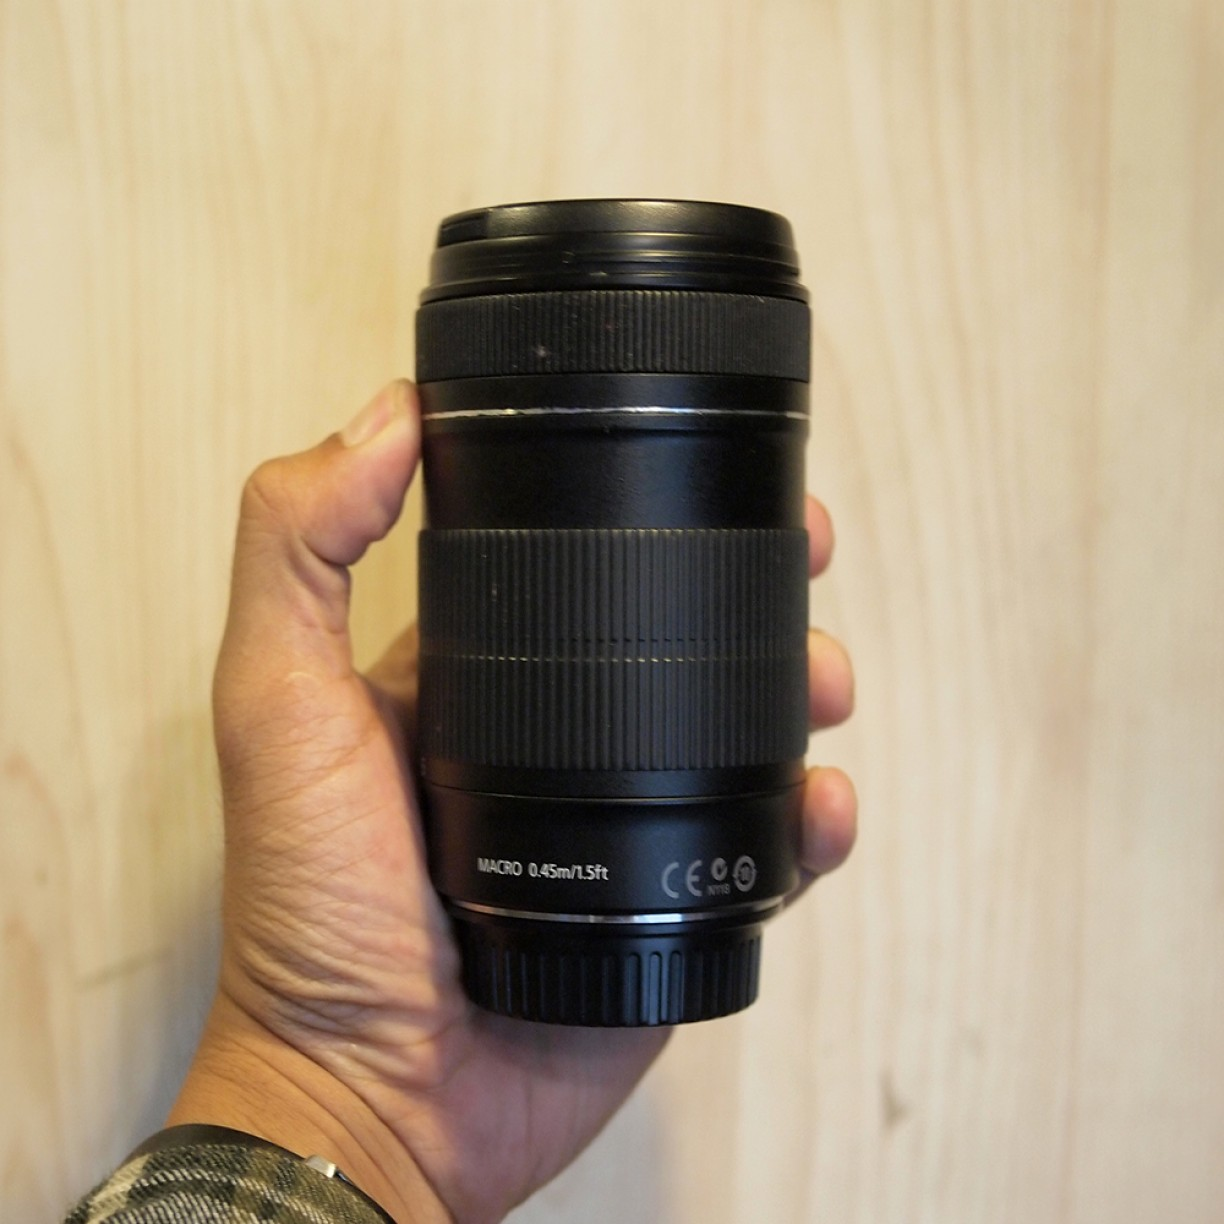 Canon EF-S 18-135mm f/3.5-5.6 IS - Good Condition | 2375